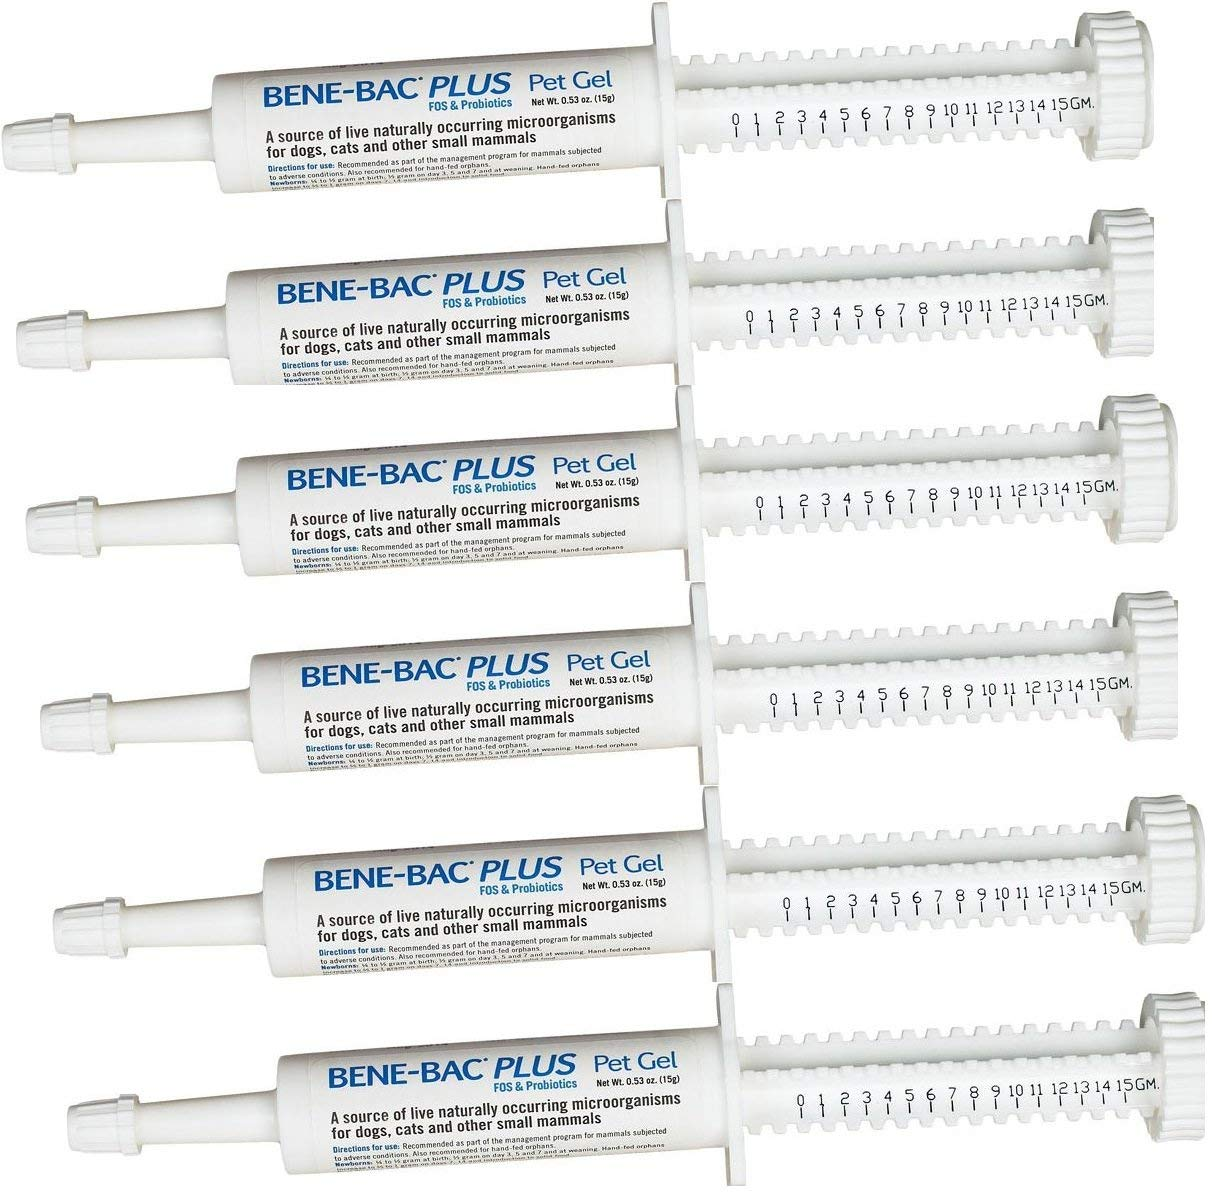 6 Pack Bene-Bac Plus Gel, 15g Syringe 6 -Pack